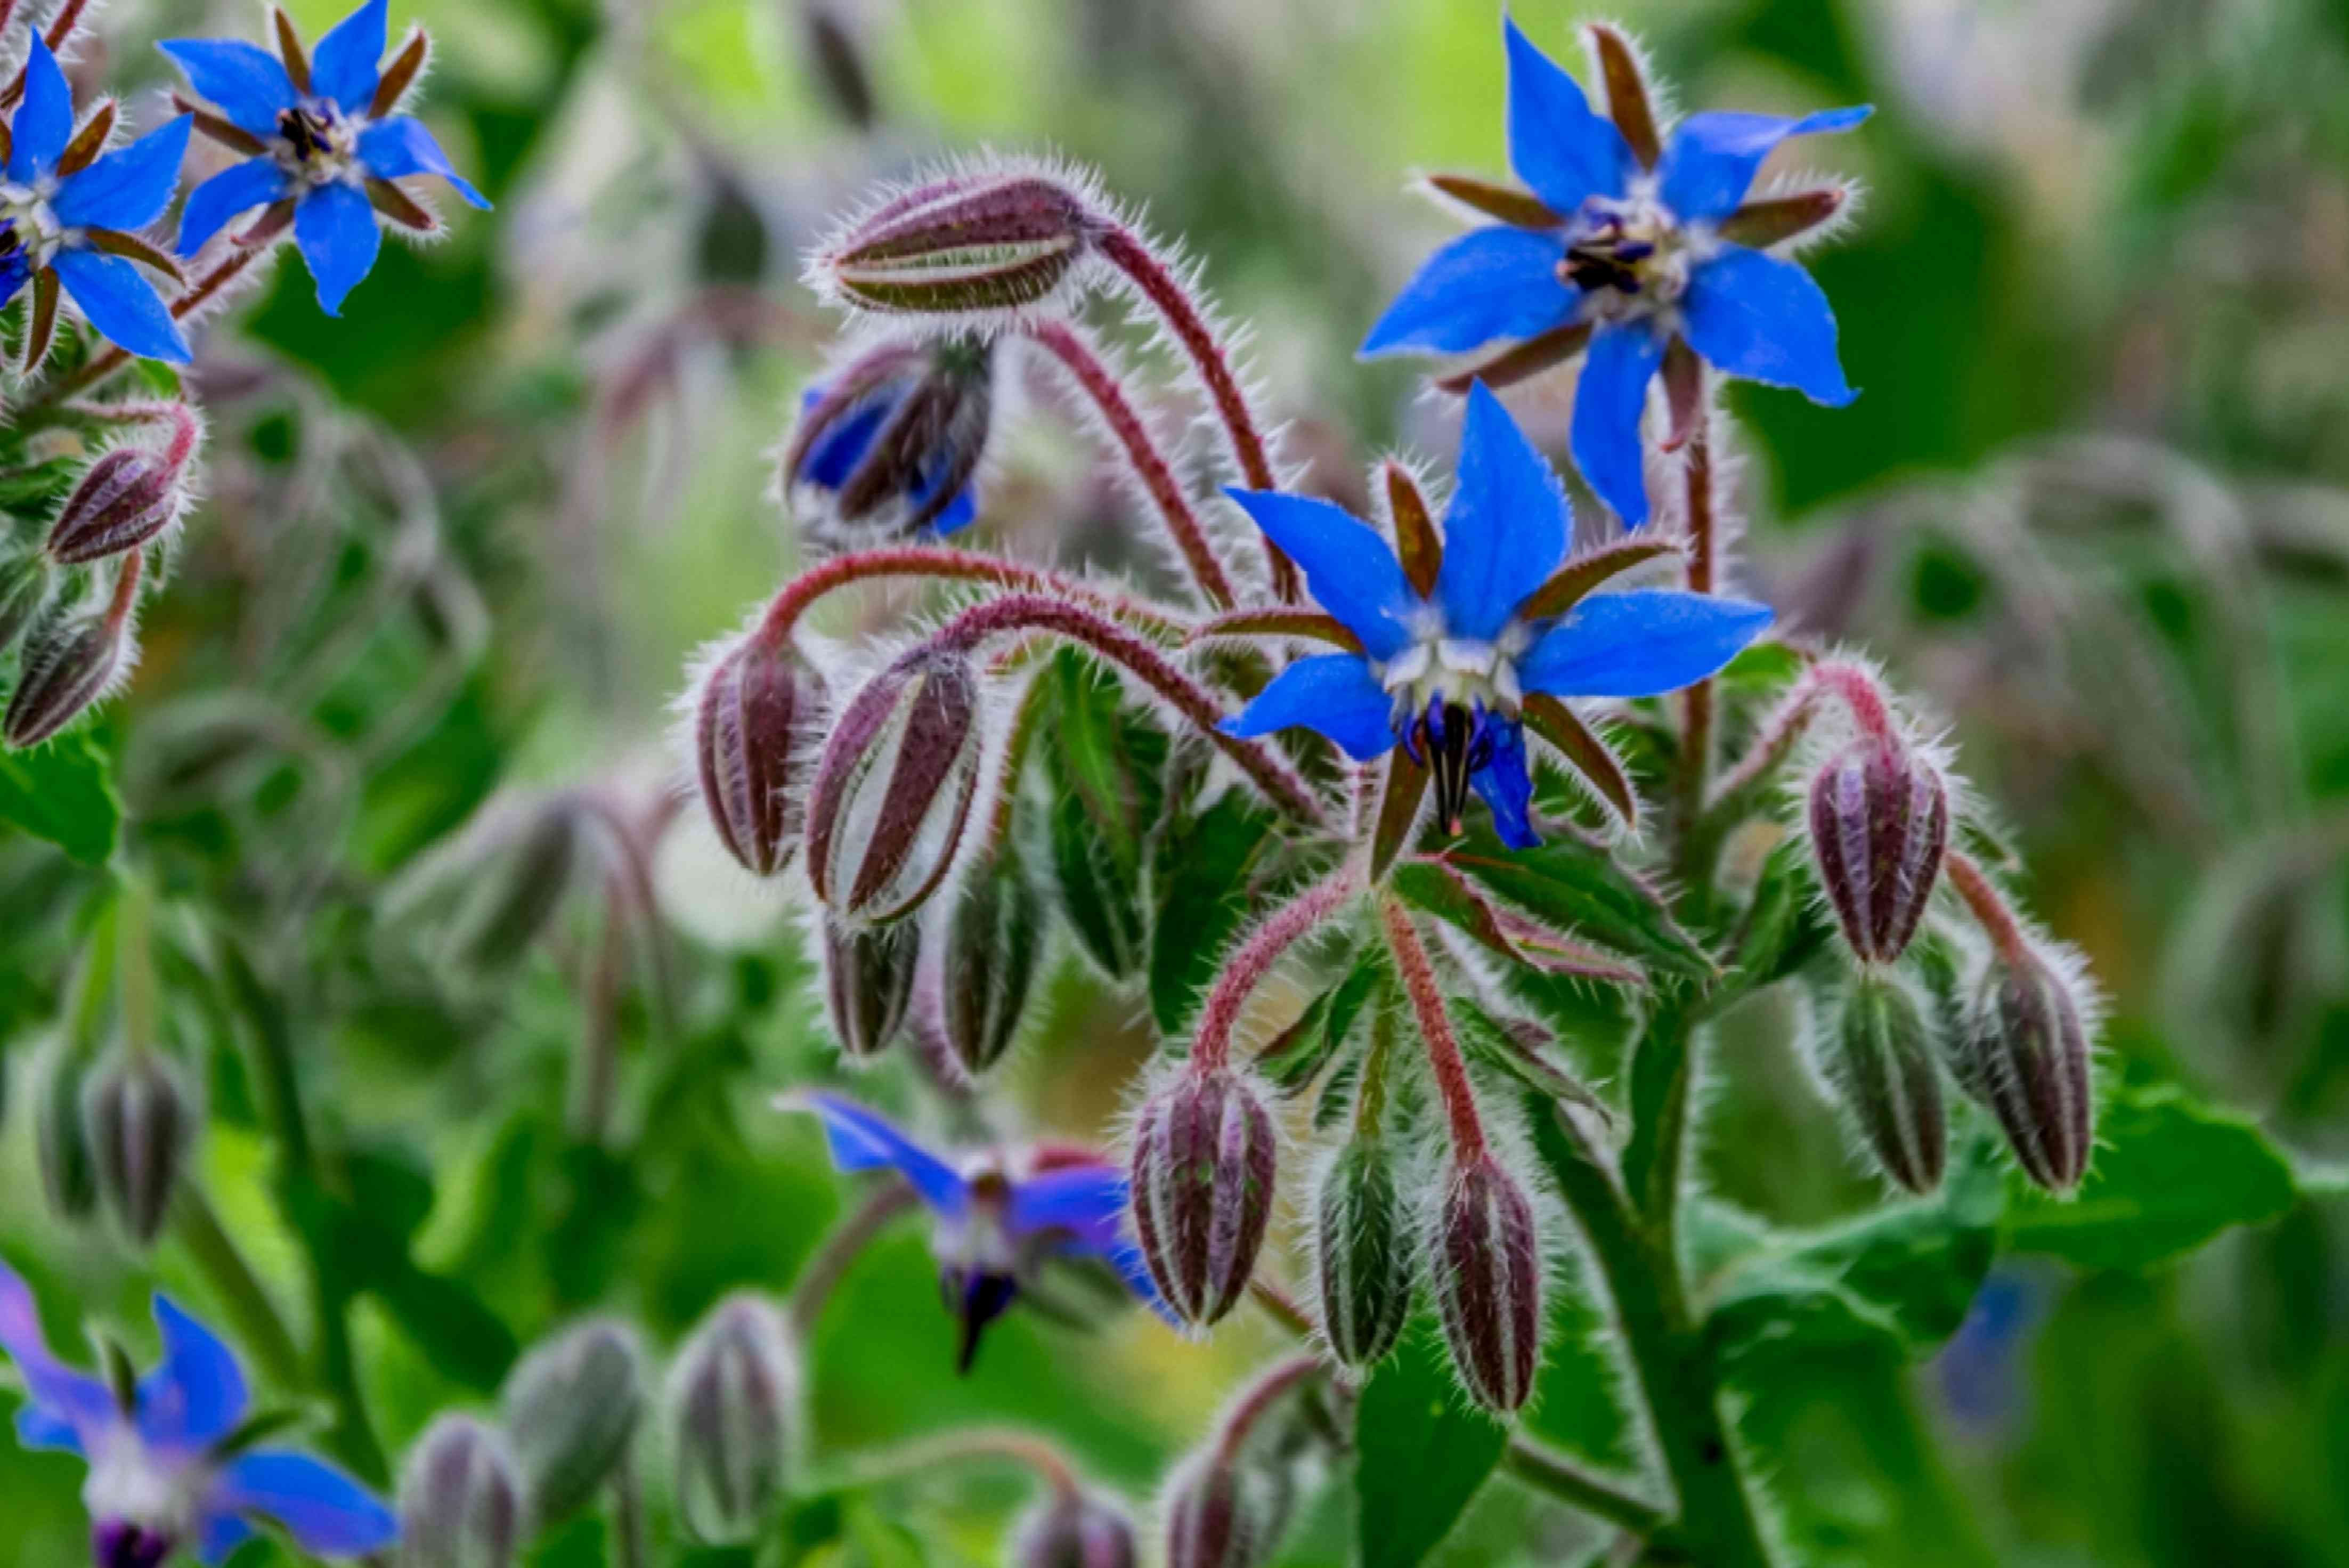 Borage plant with purple buds and two blue flowers on stem